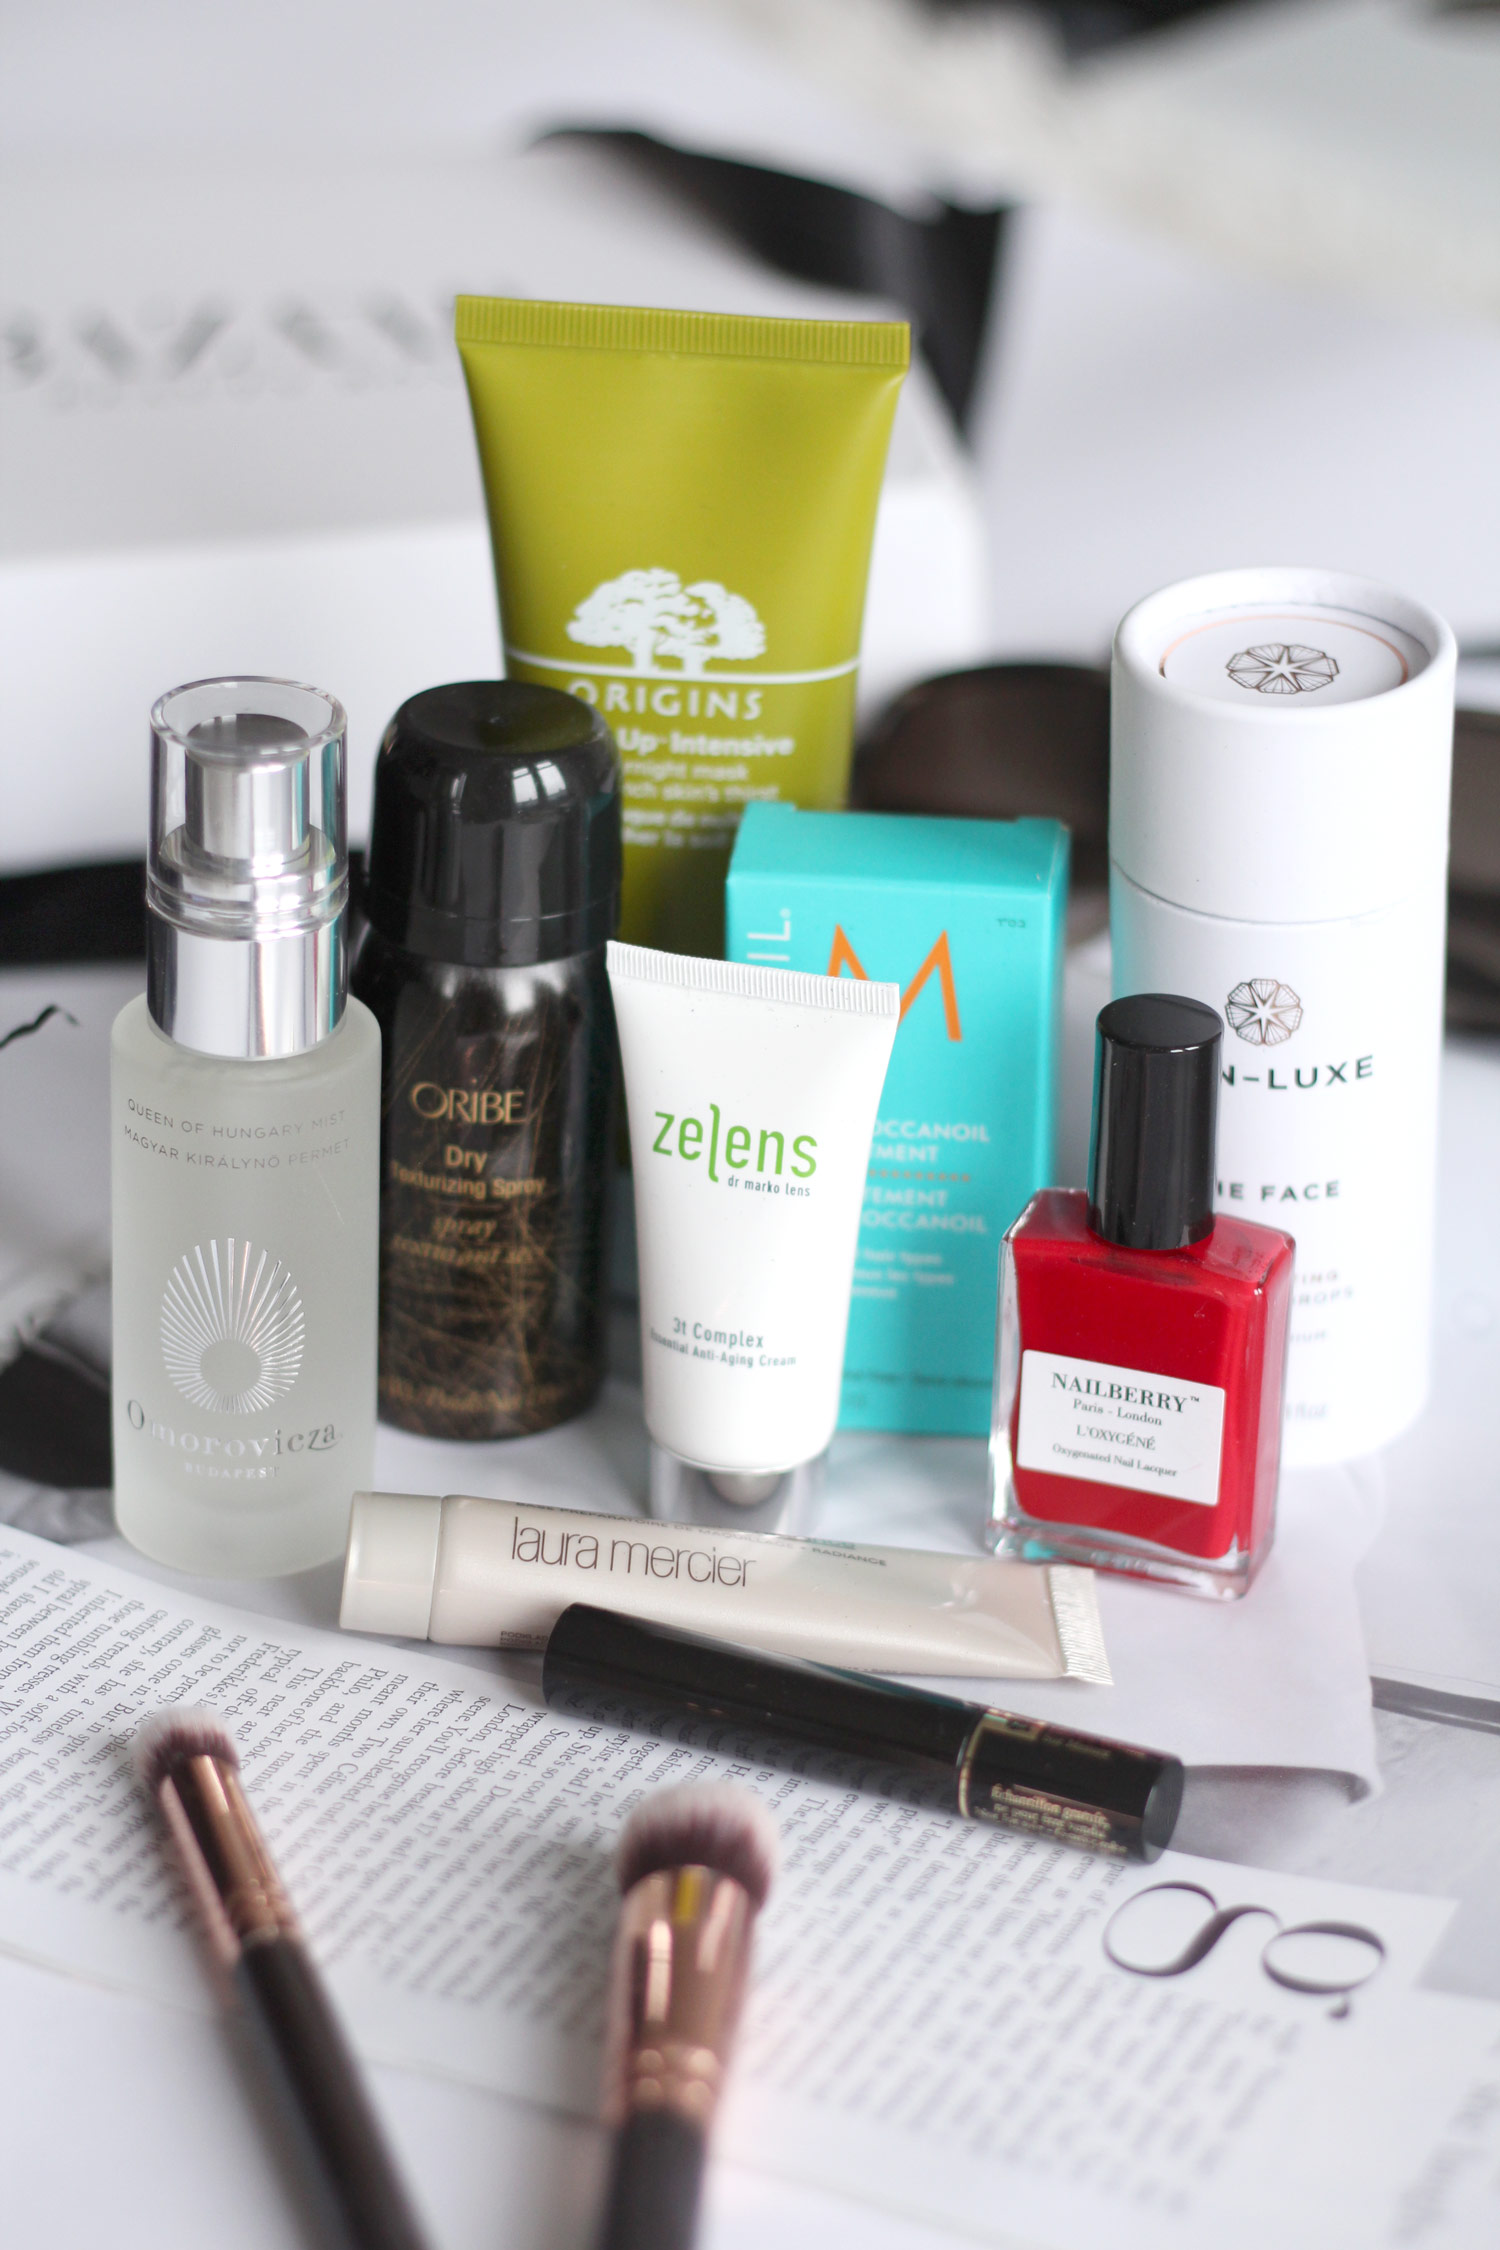 latest-in-beauty-harpers-bazaar-box-review-2